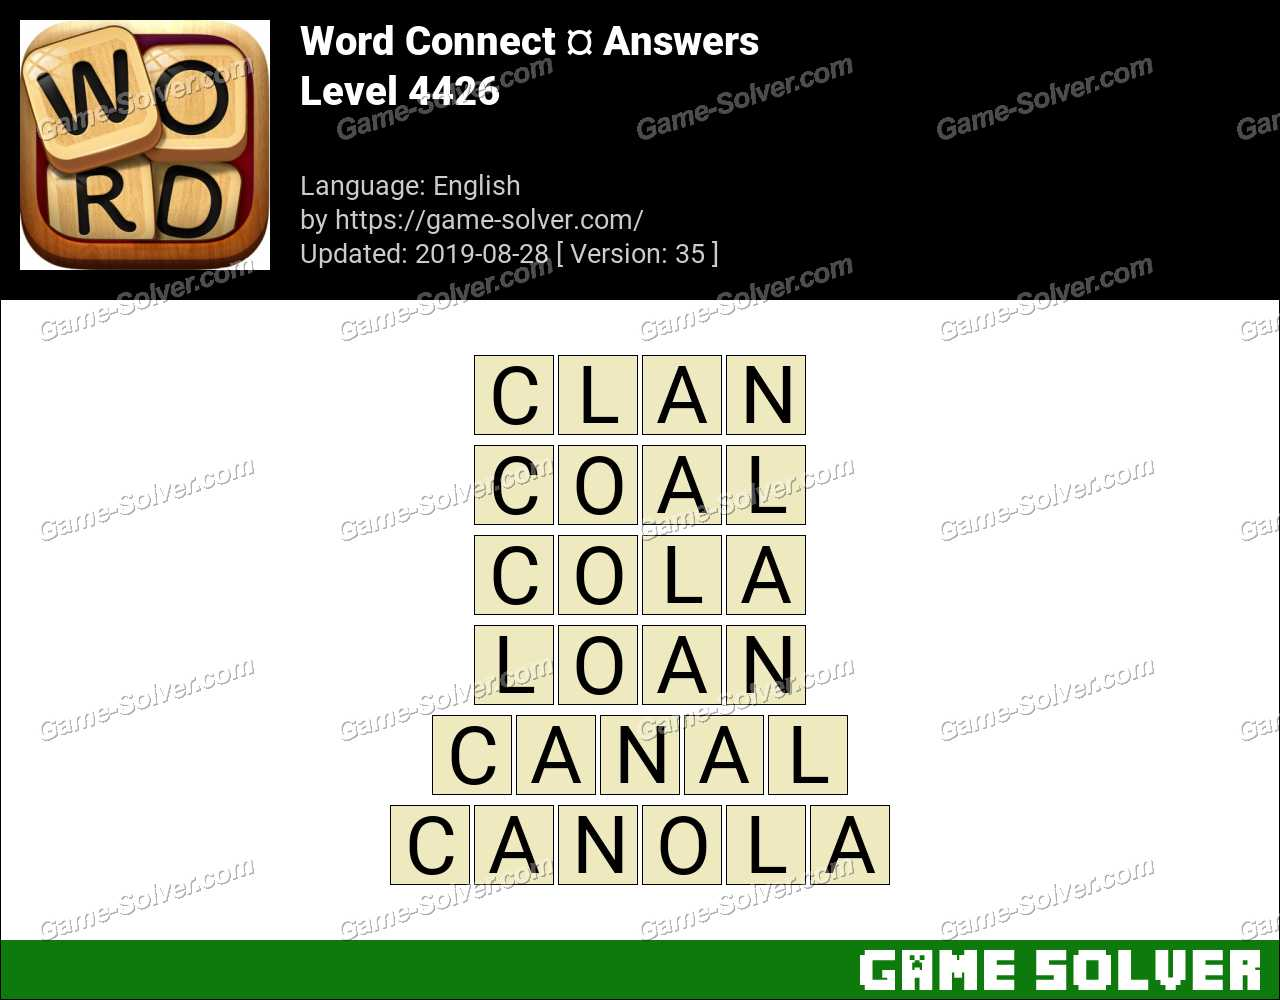 Word Connect Level 4426 Answers